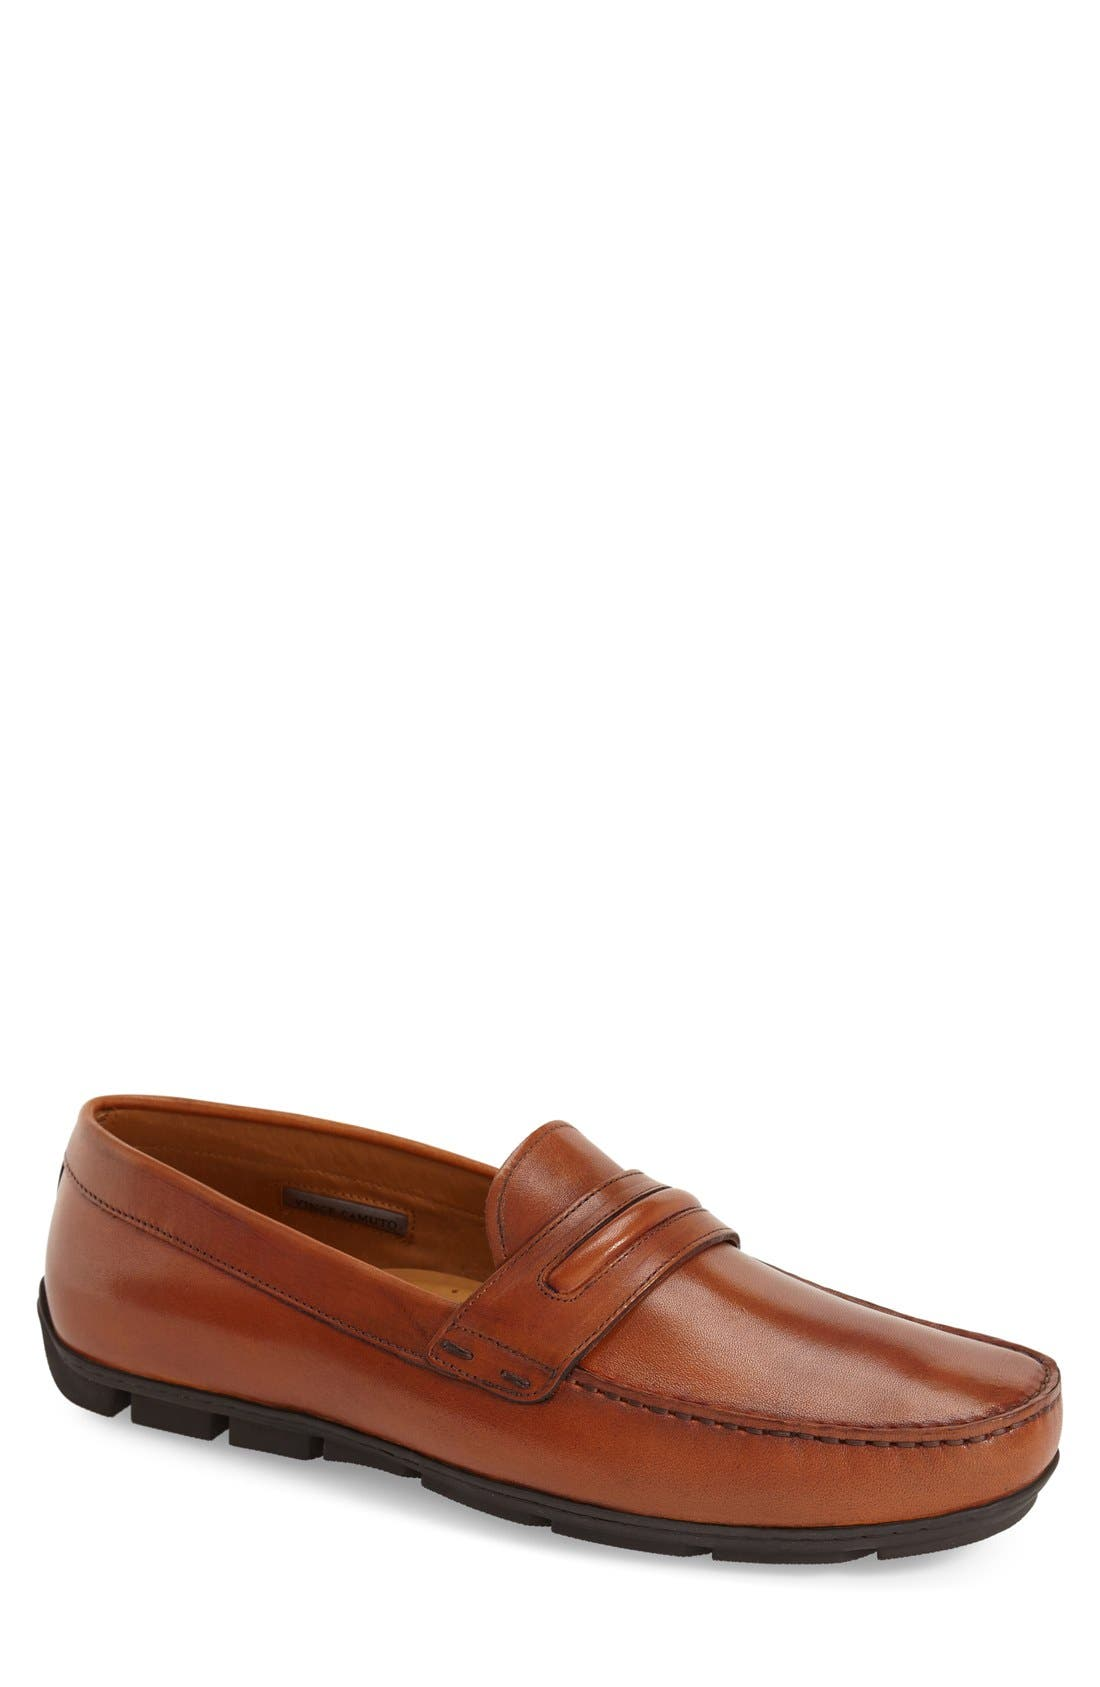 Alternate Image 1 Selected - Vince Camuto 'Donte' Driving Shoe (Men)